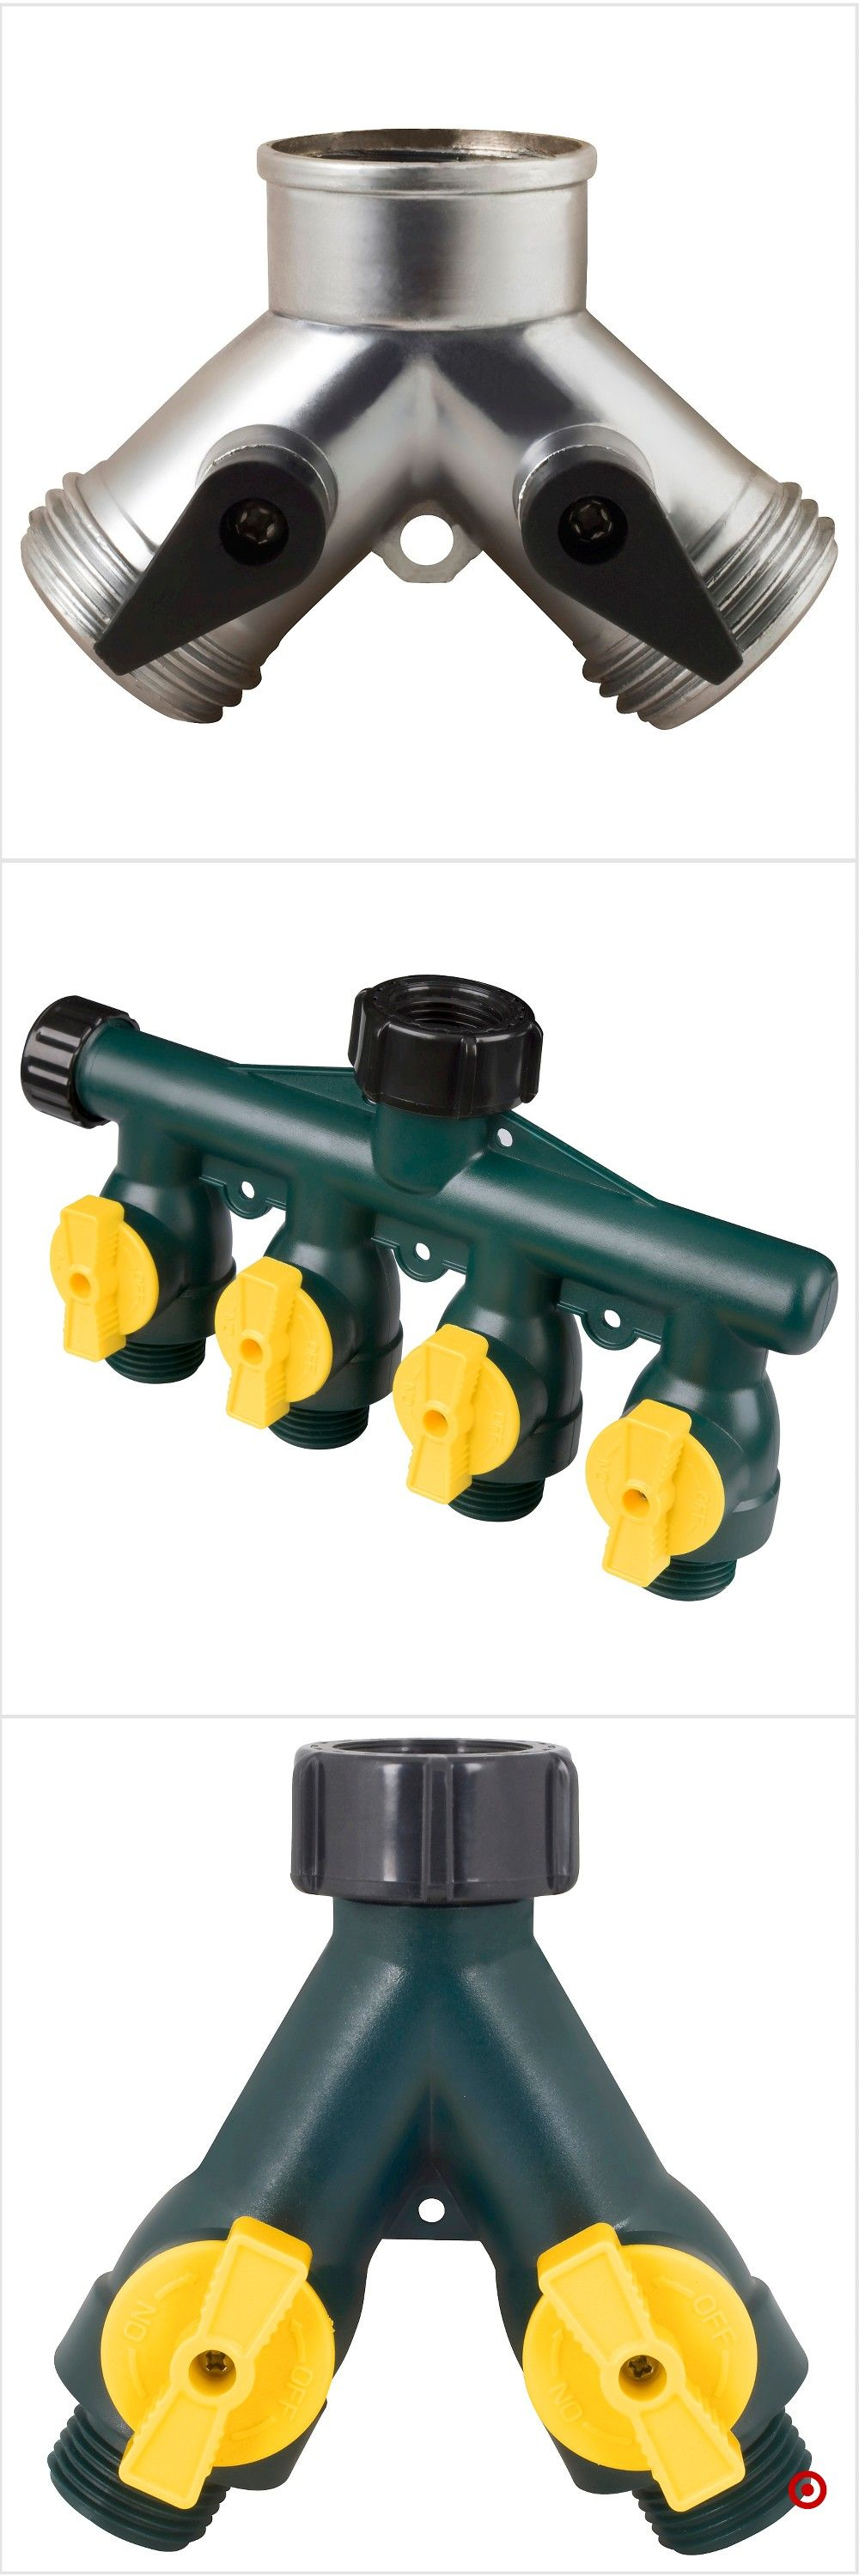 Shop Target for hose valve you will love at great low